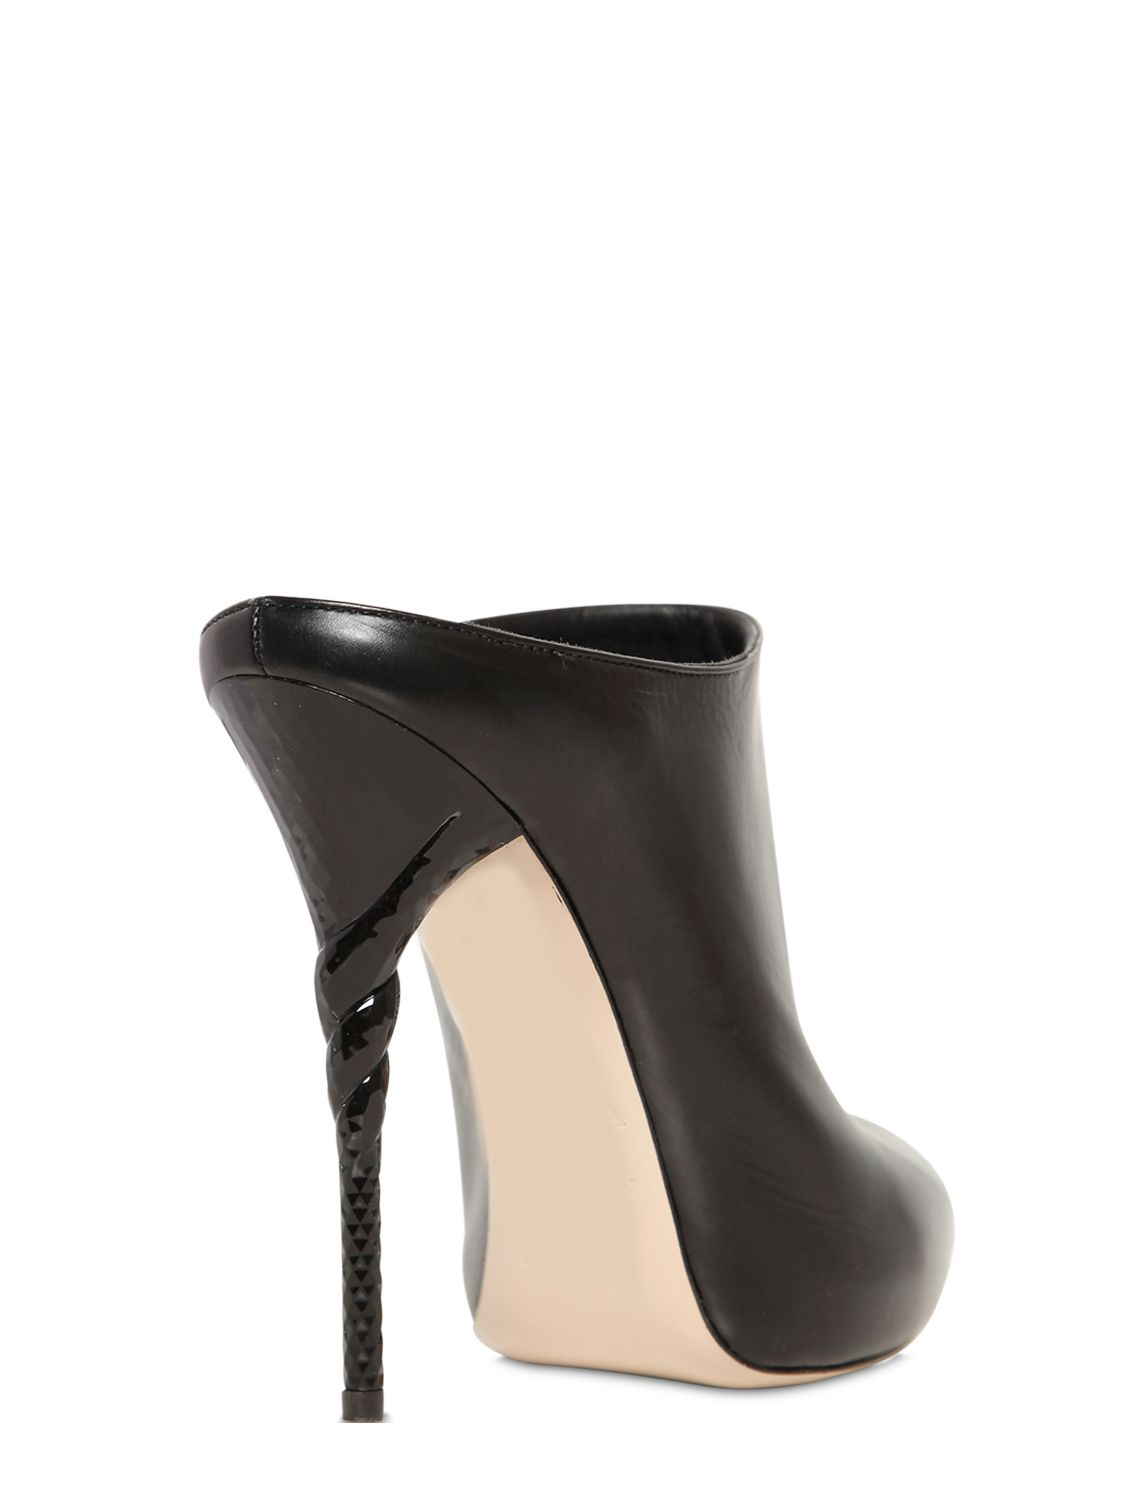 Lyst Le Silla 120mm Torchon Heel Leather Mules In Black